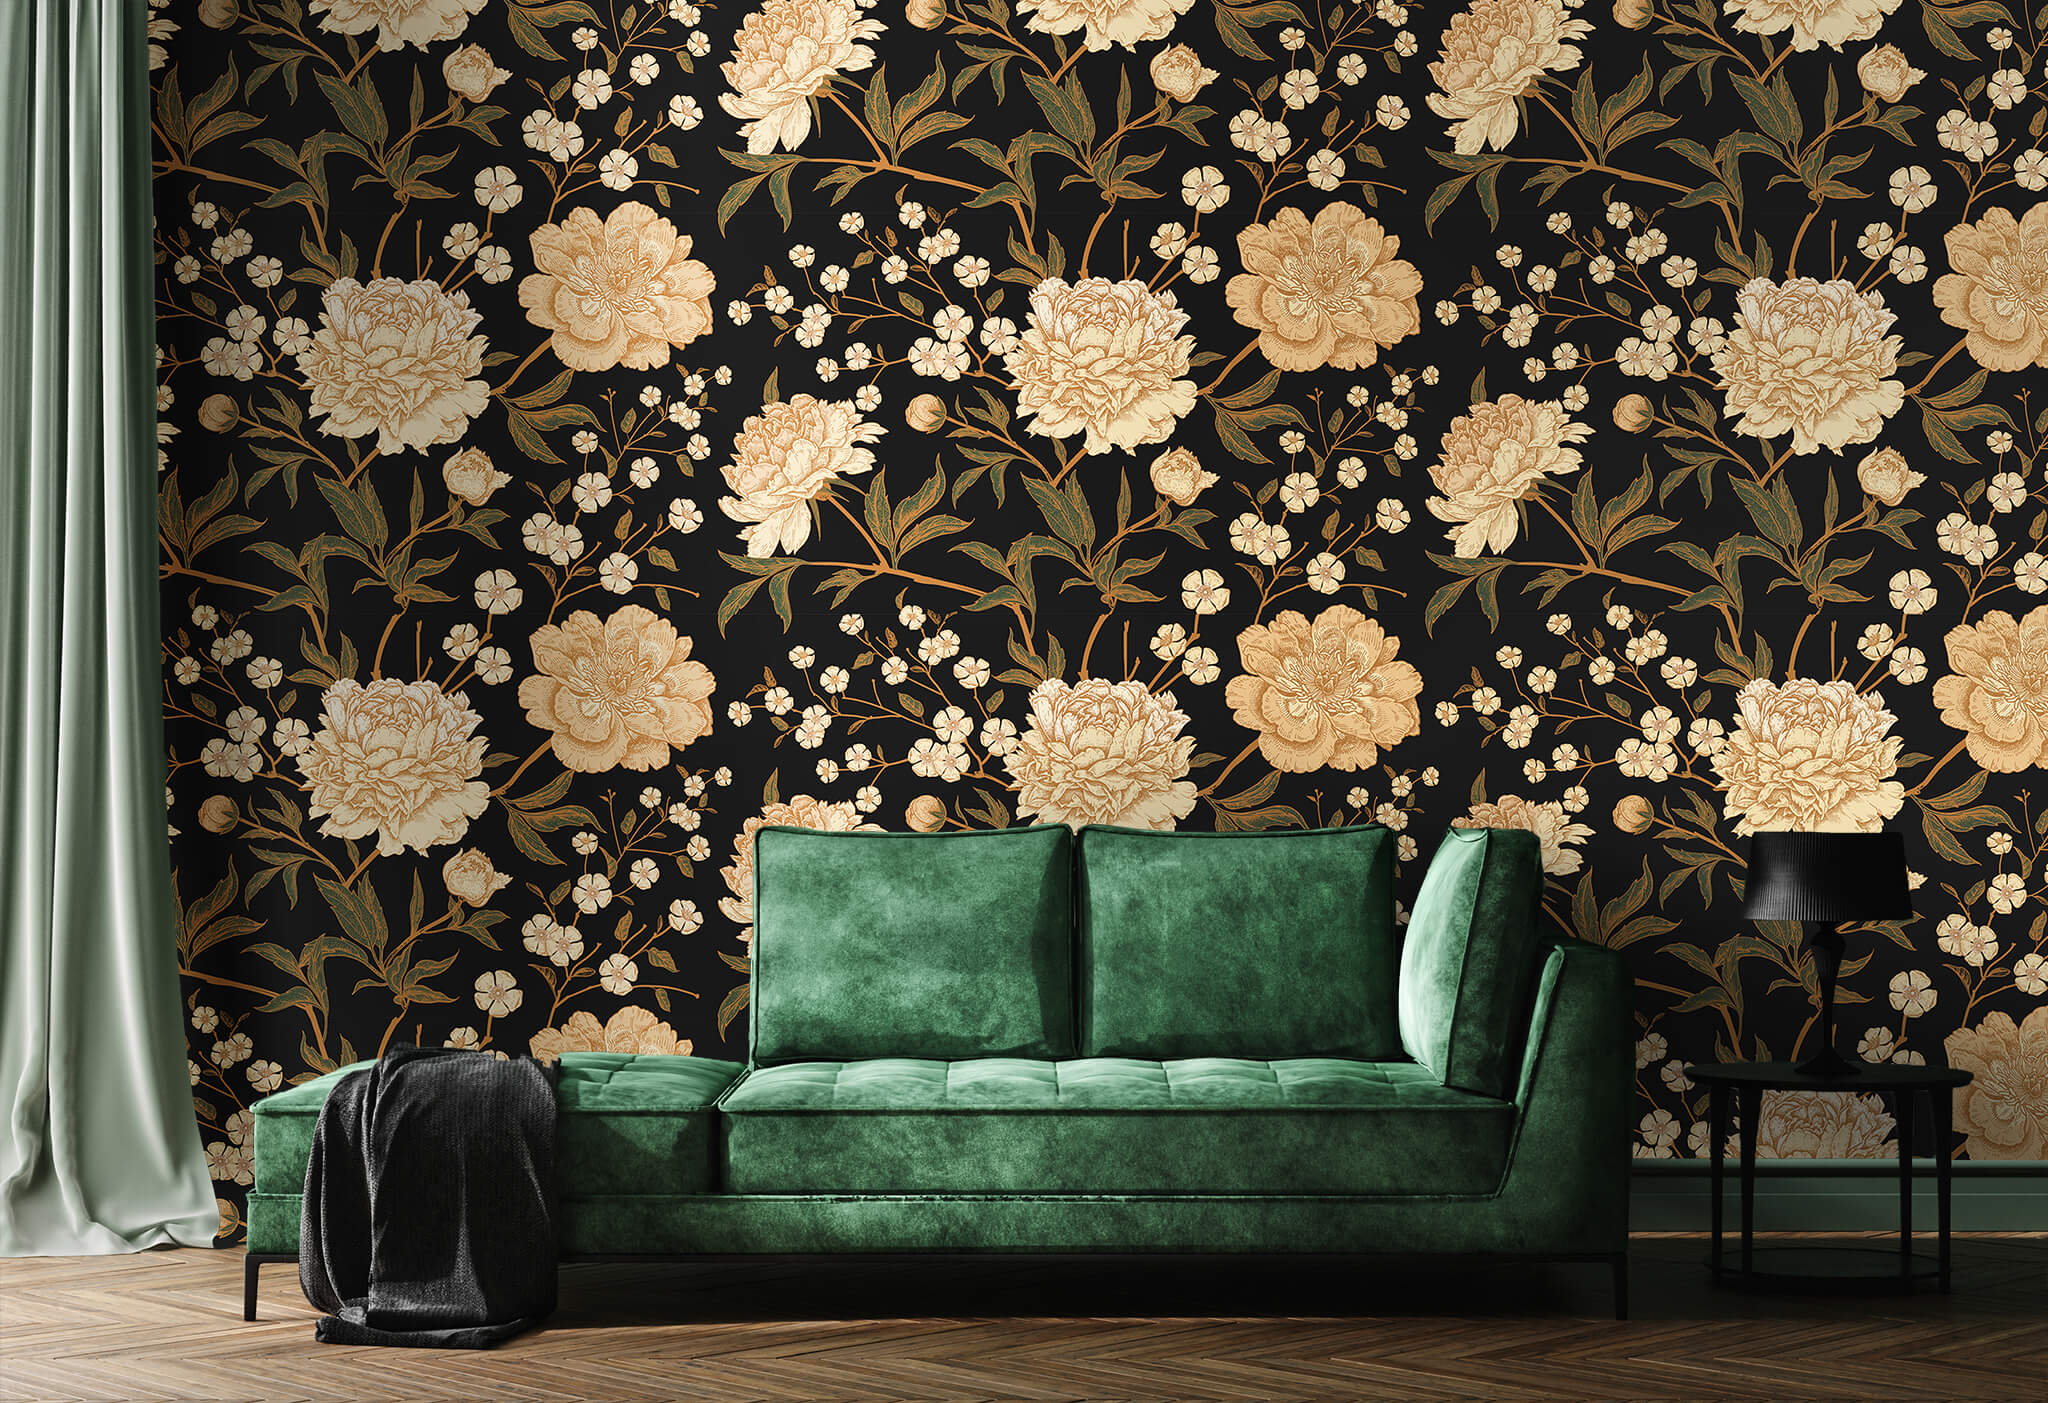 Using modern floral wallpaper with bold colors is great for the year 2021.